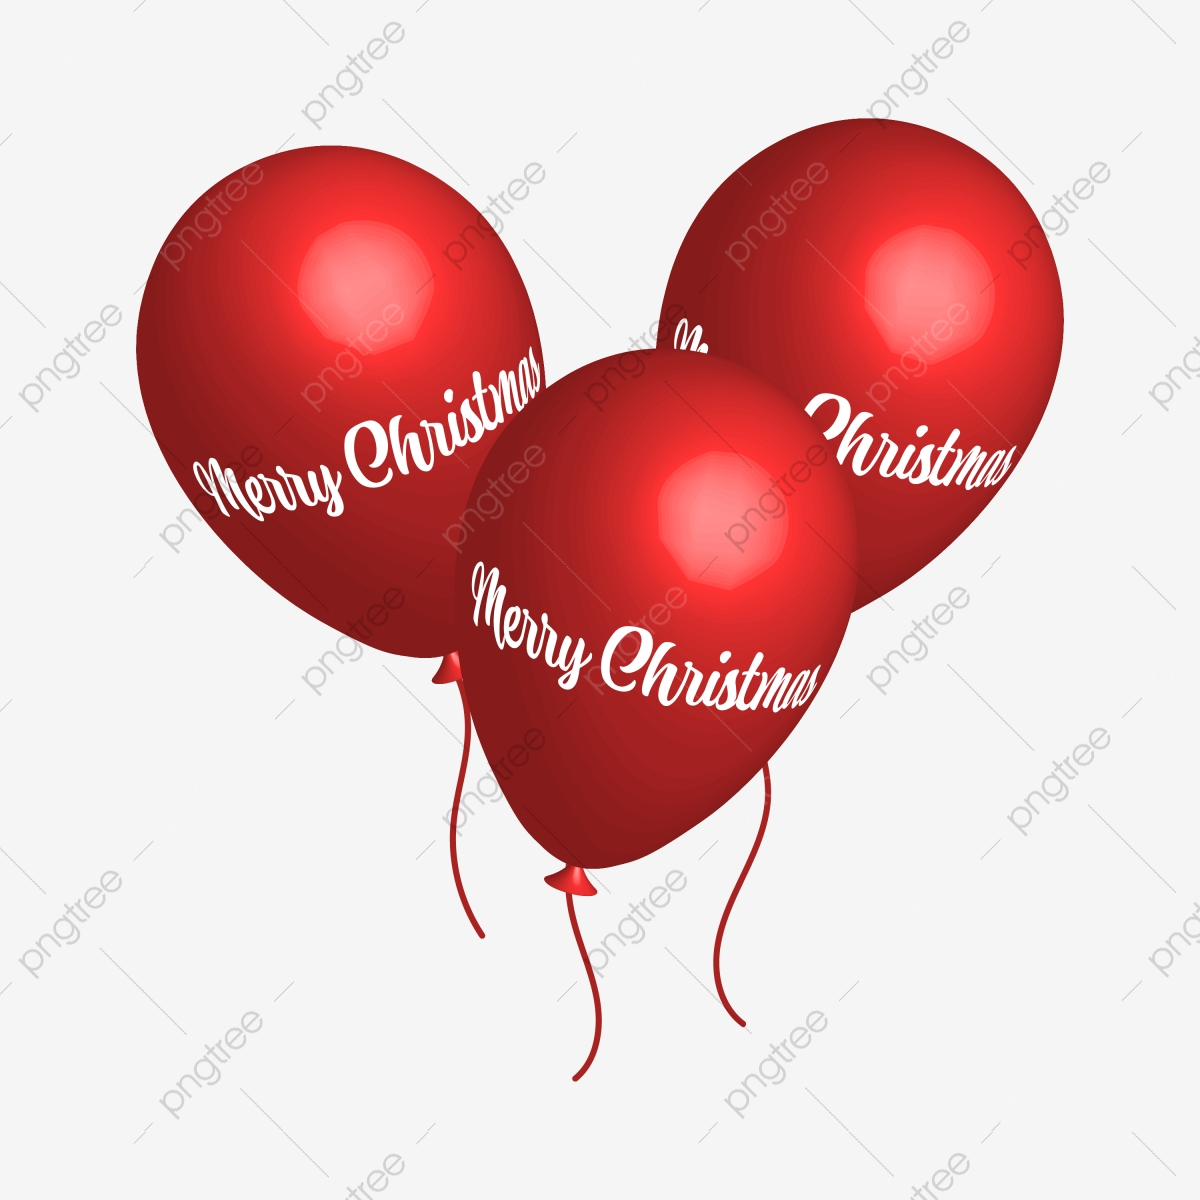 Traditional Red Christmas Balloons With Merry Text Present Happiness Walking Png And Vector With Transparent Background For Free Download